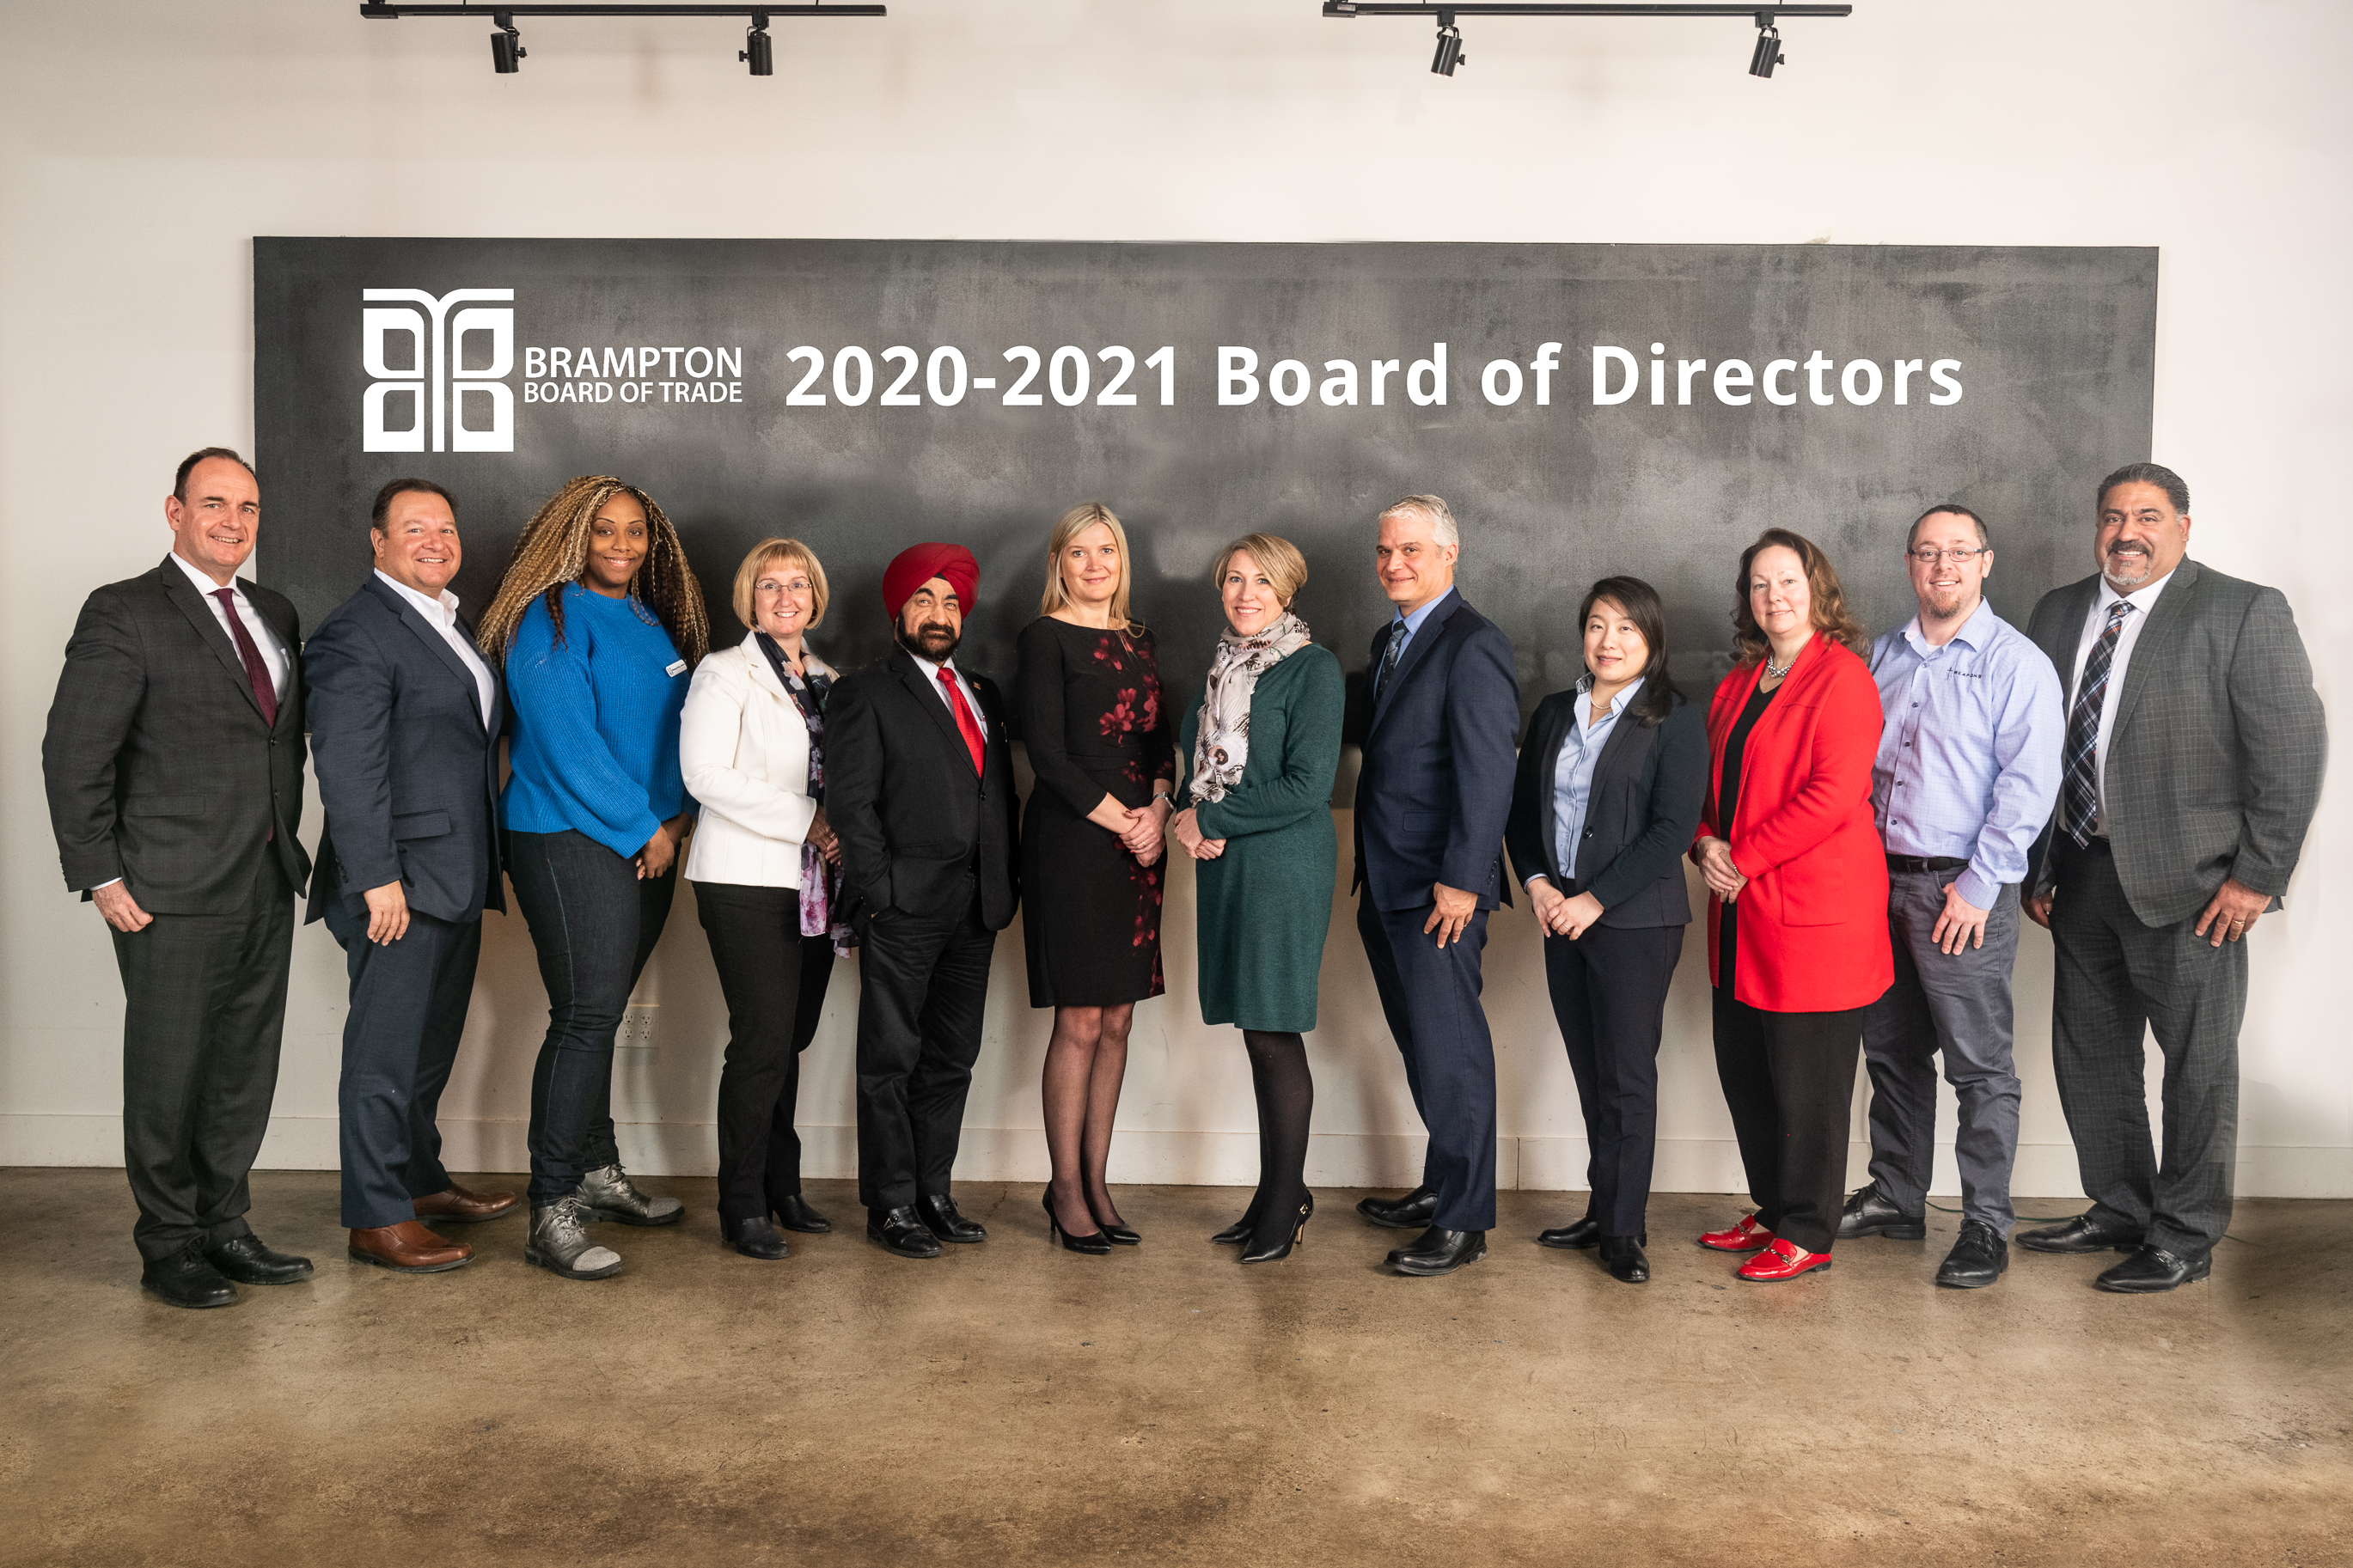 2020-2021 Brampton Board of Trade Board of Directors.JPG